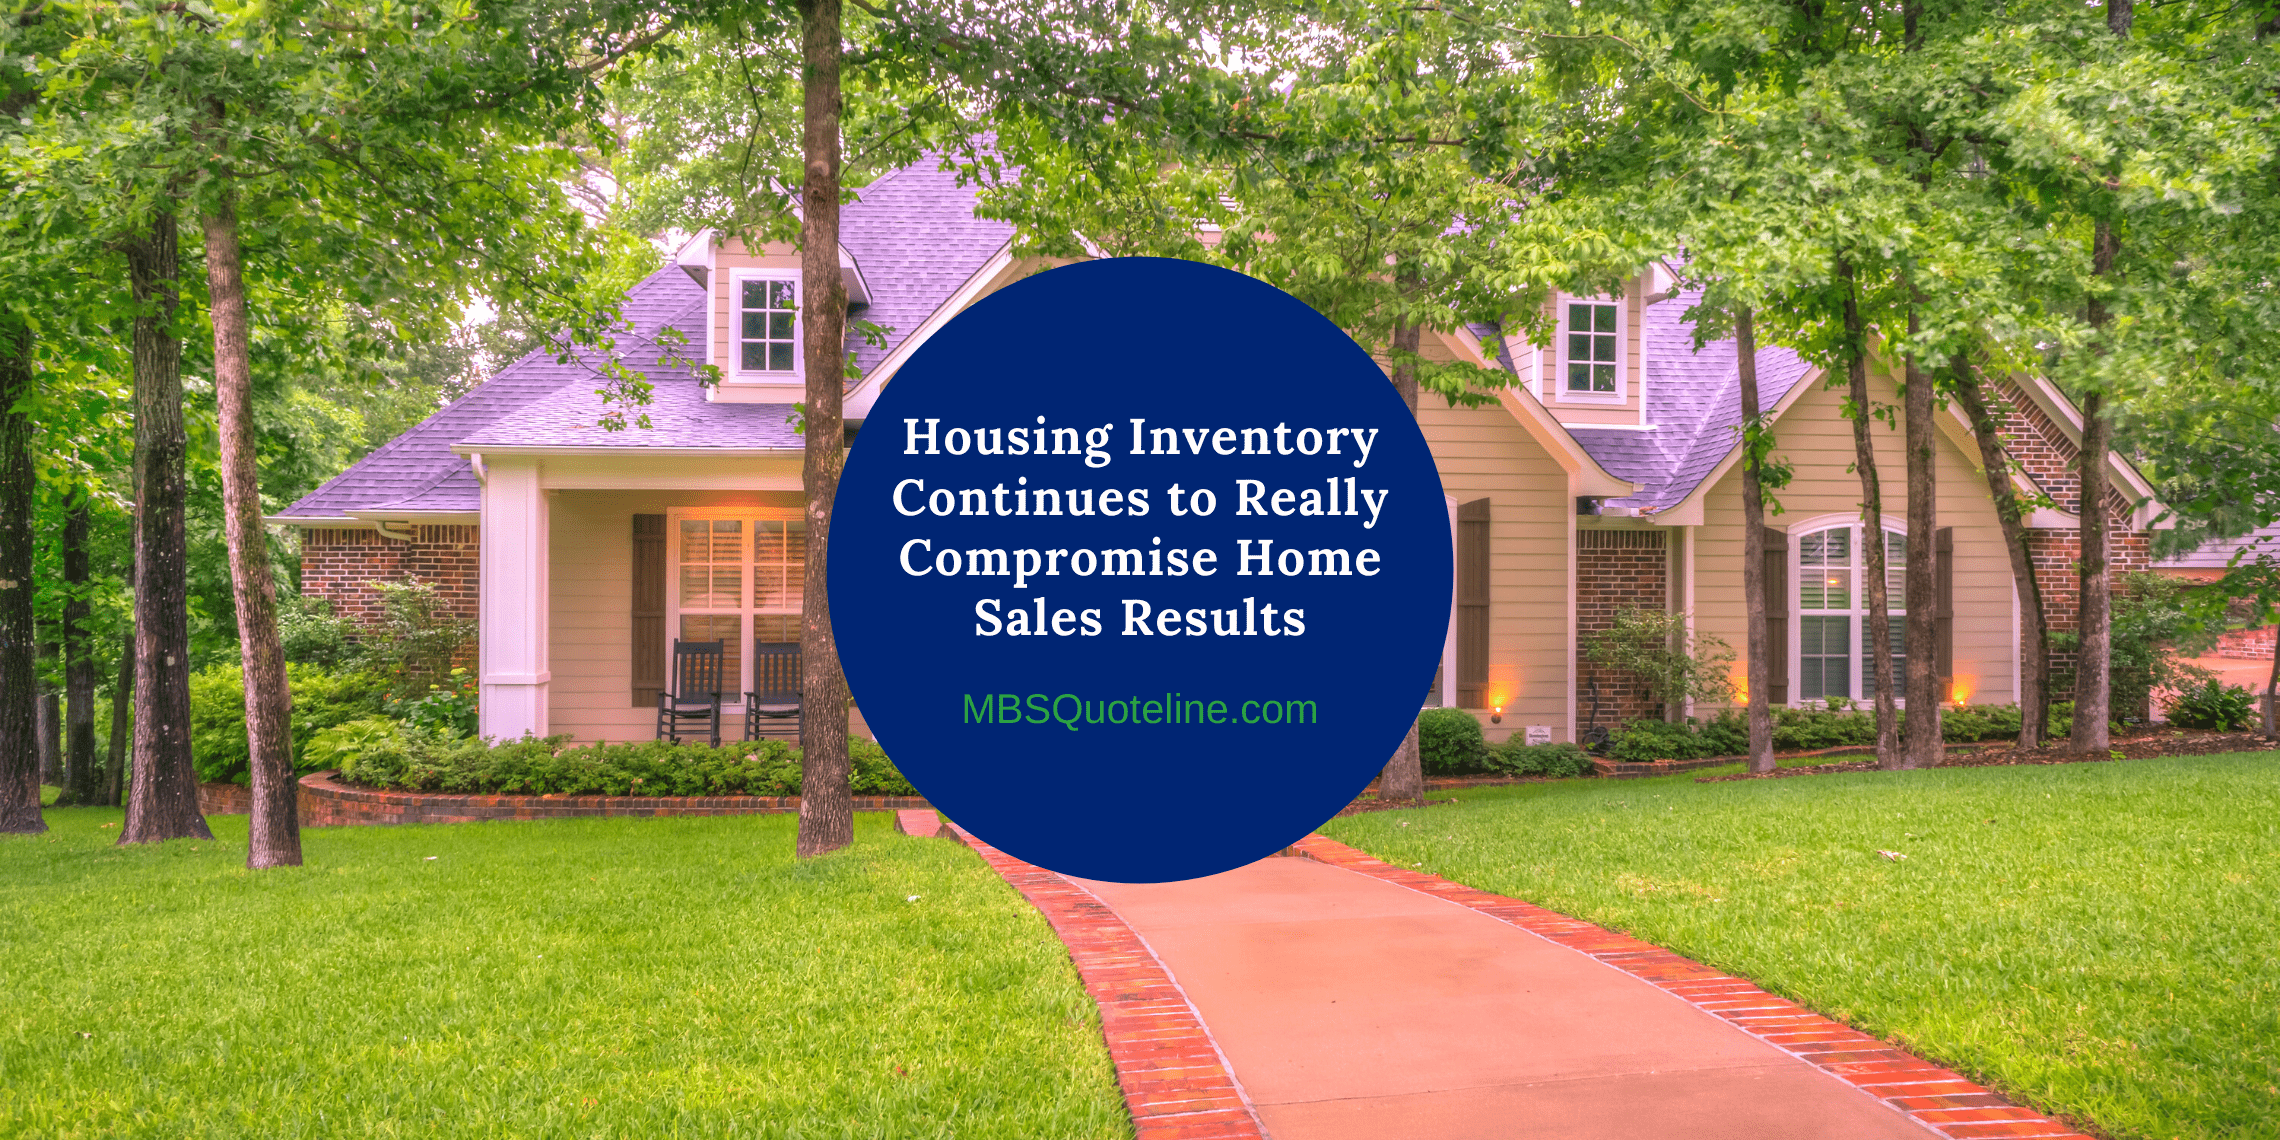 housing inventory continue really compromise home sales results mortgagetime mbsquoteline featured